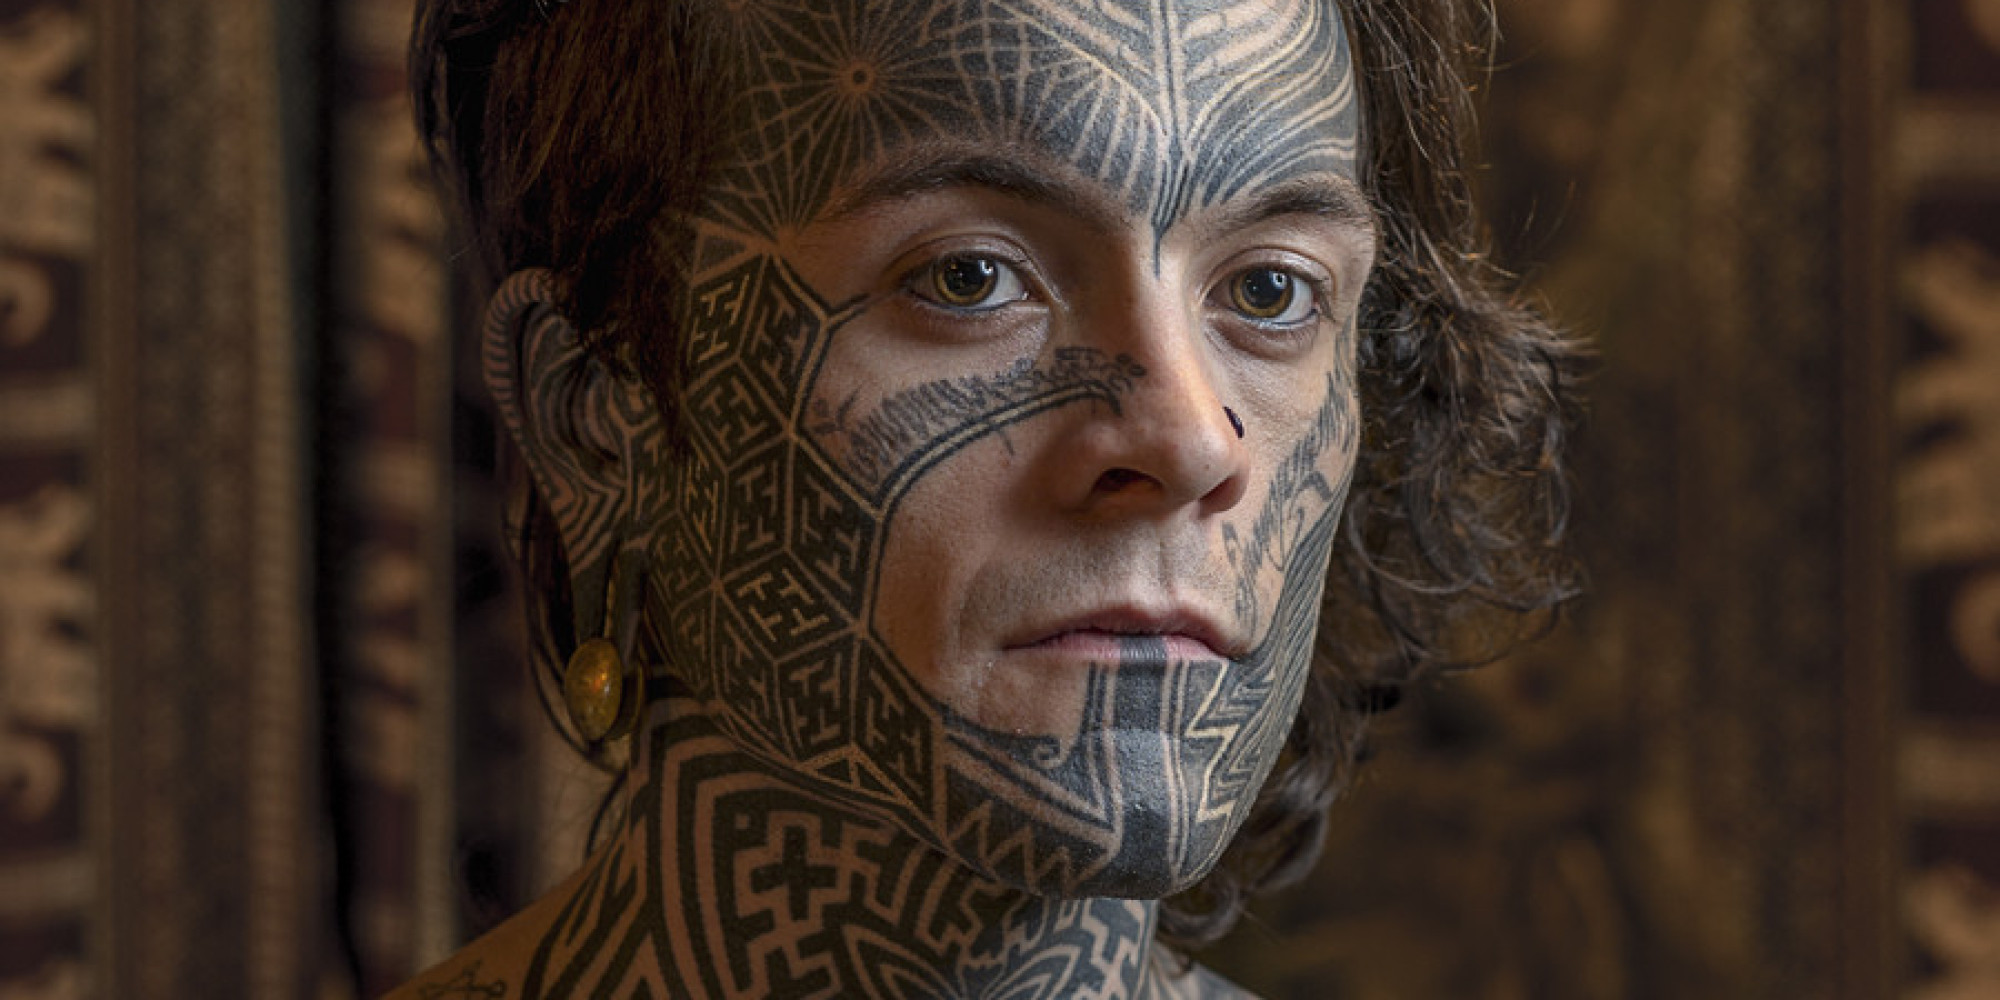 You May Have Judgements About Face Tattoos, But This Will